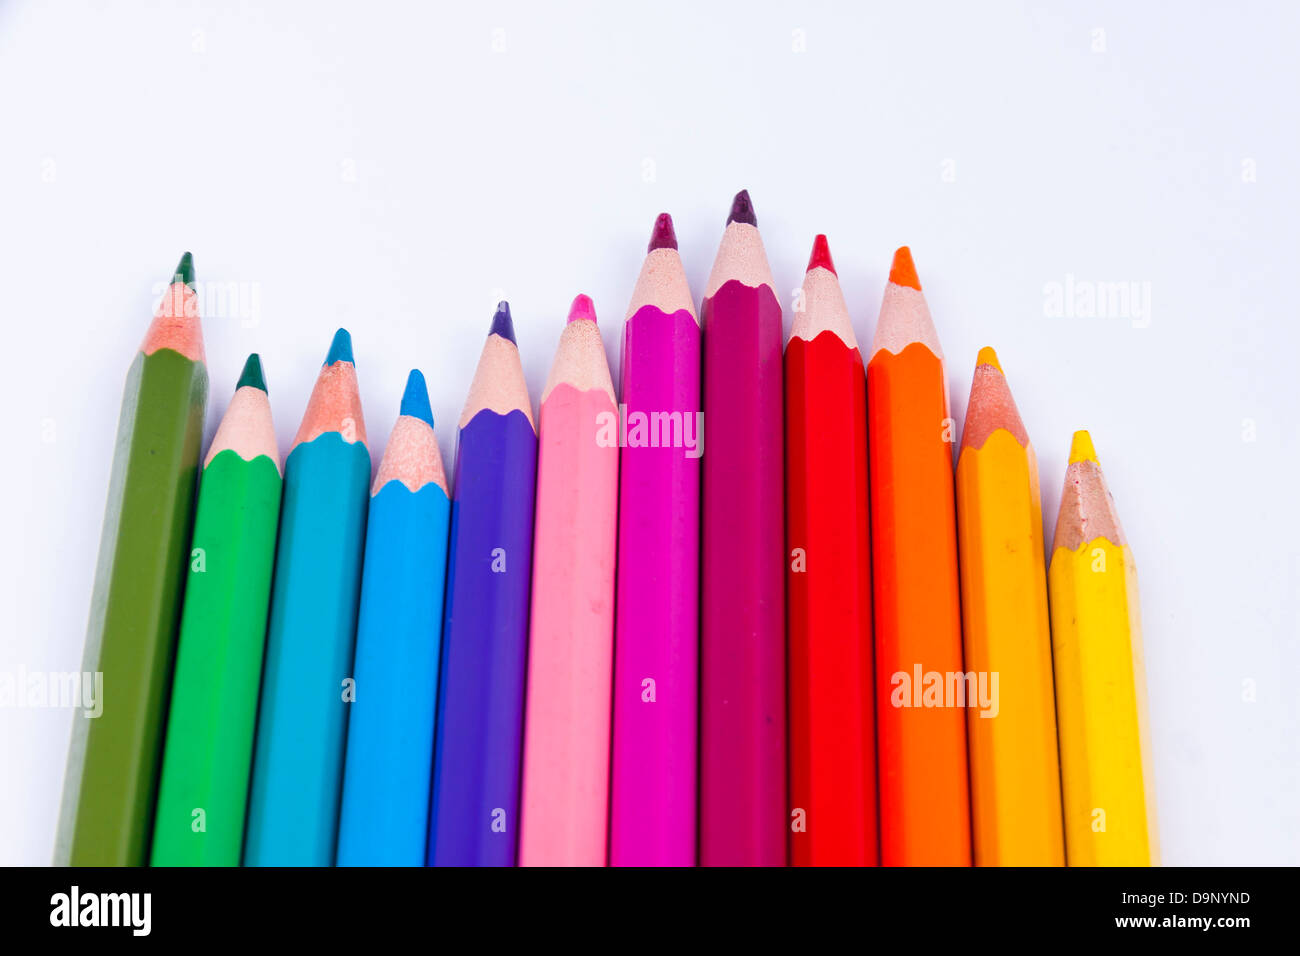 Pallet of colourful crayons on white background. - Stock Image